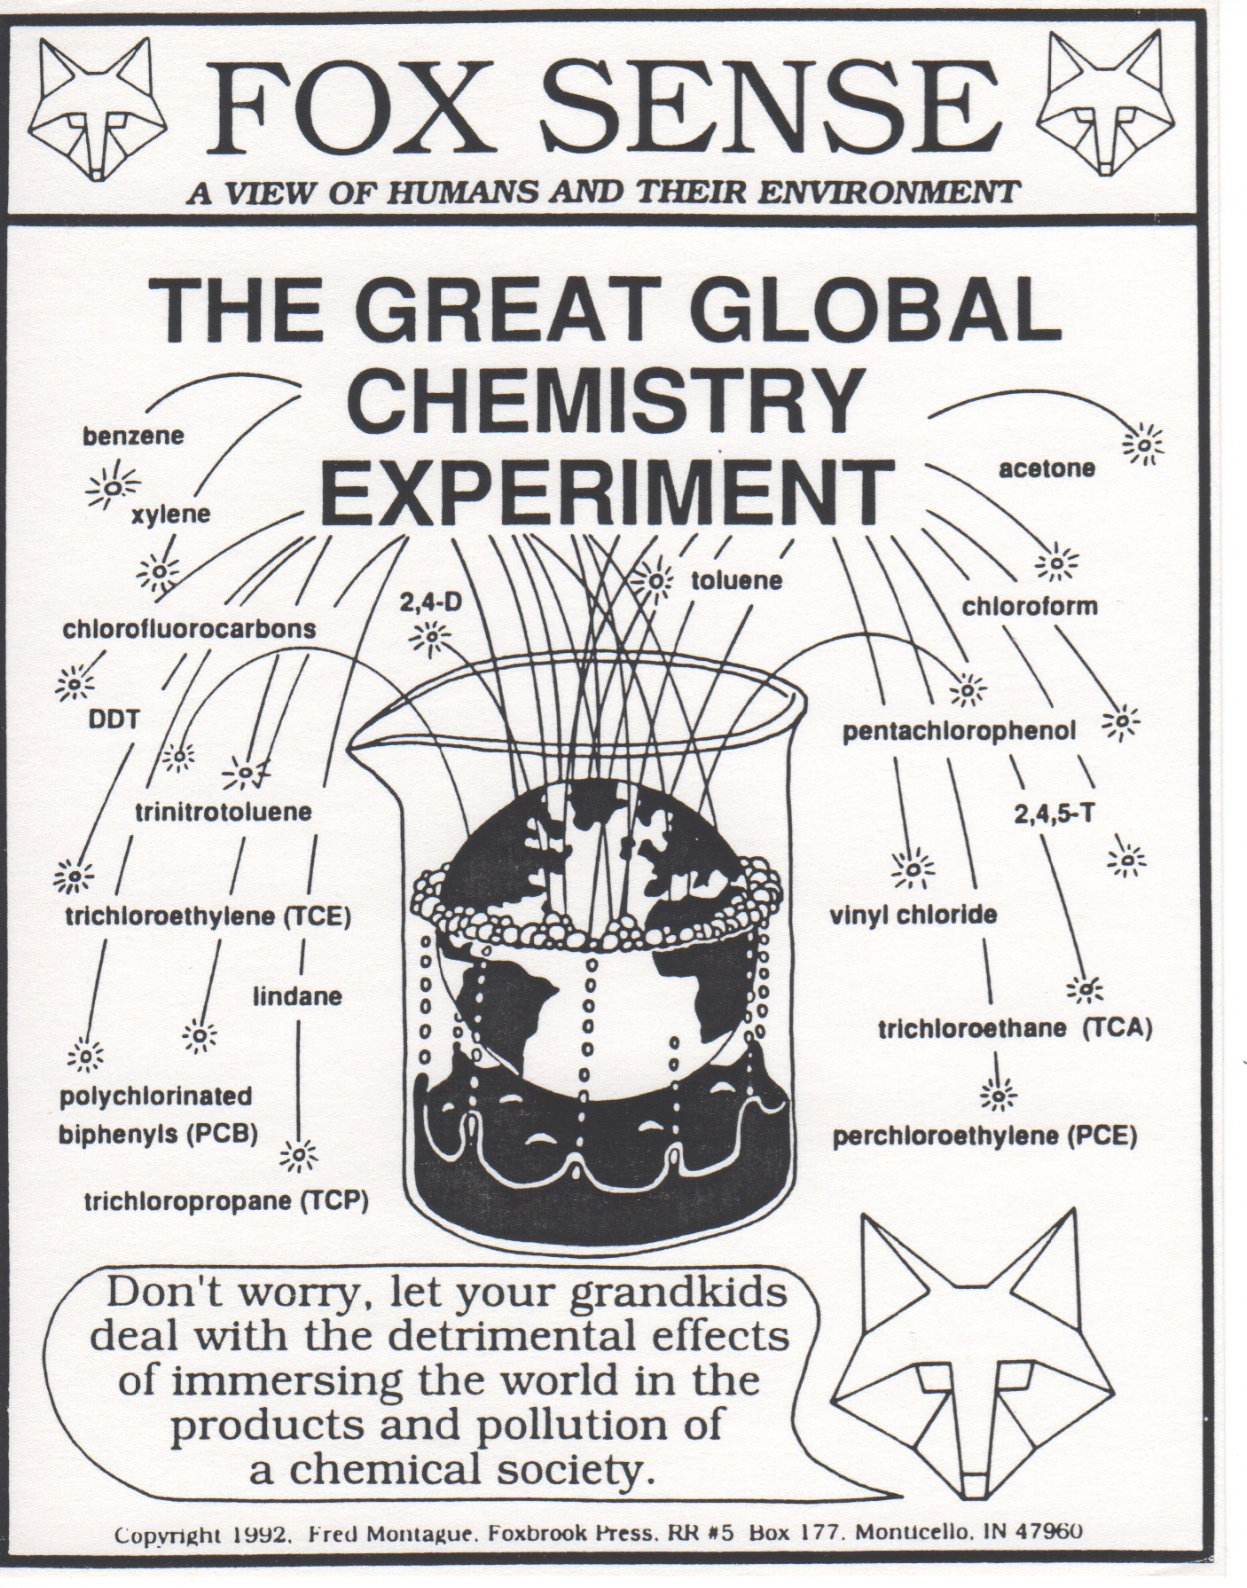 """""""The Great Global Chemistry Experiment"""" from Fred Montague's Foxsense .© 1992 Fred Montague"""